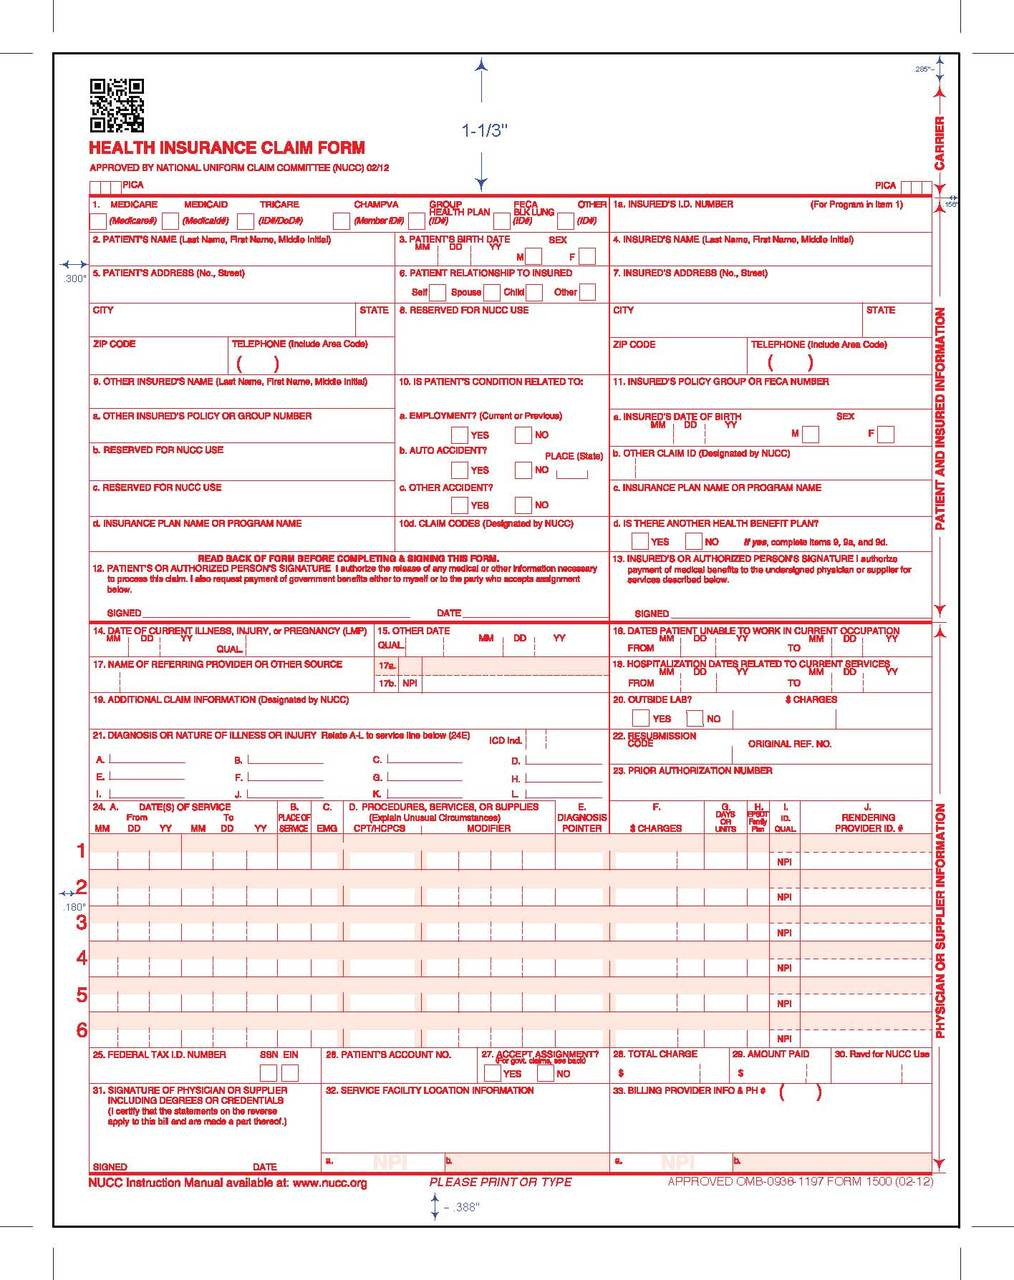 New cms 1500 0212 claim form free shipping new cms 1500 0212 claim form laser cut 25 thecheapjerseys Images